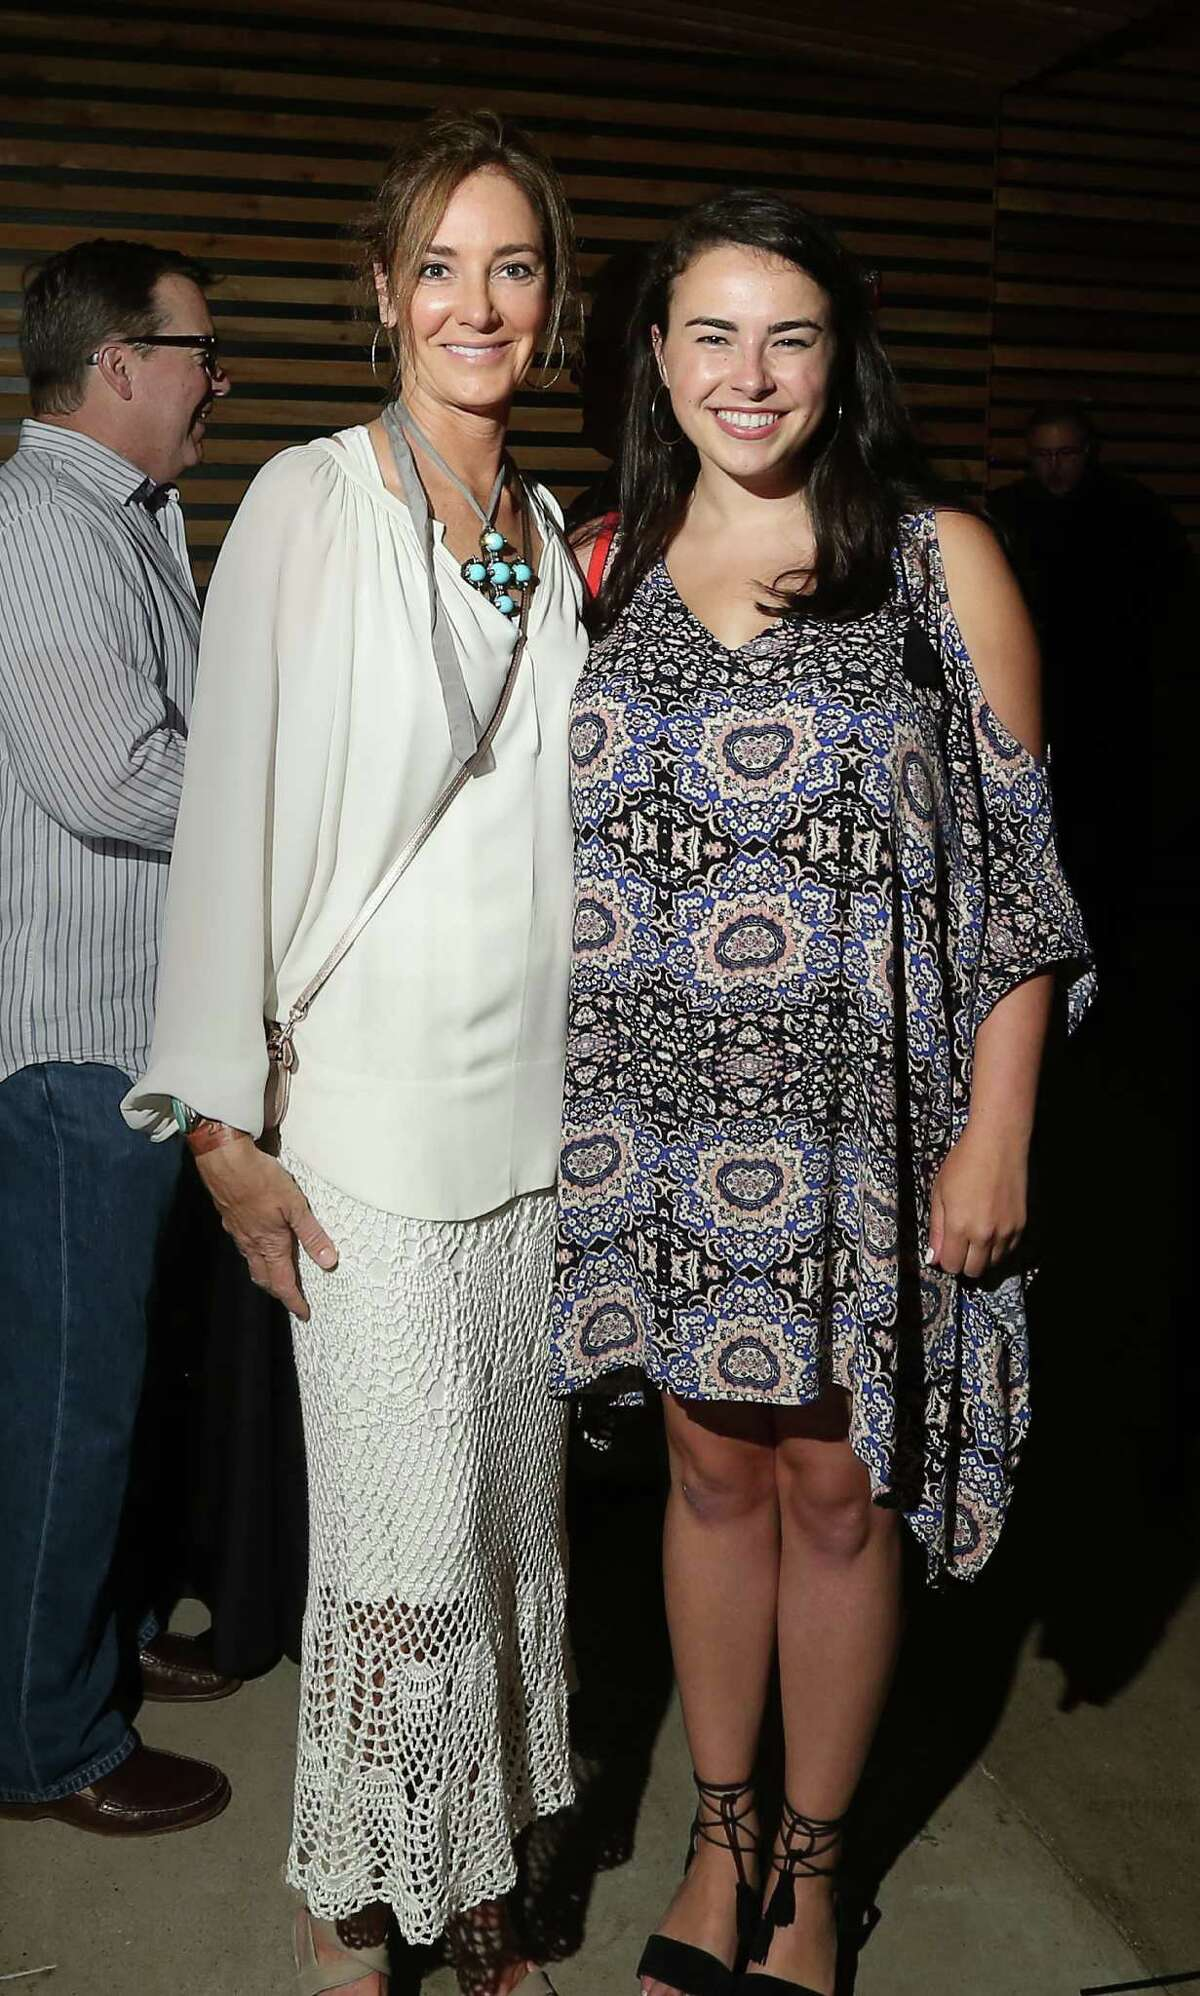 Renee Lewis and Lexie Brown at the opening of the White Oak Music Hall on Aug. 18